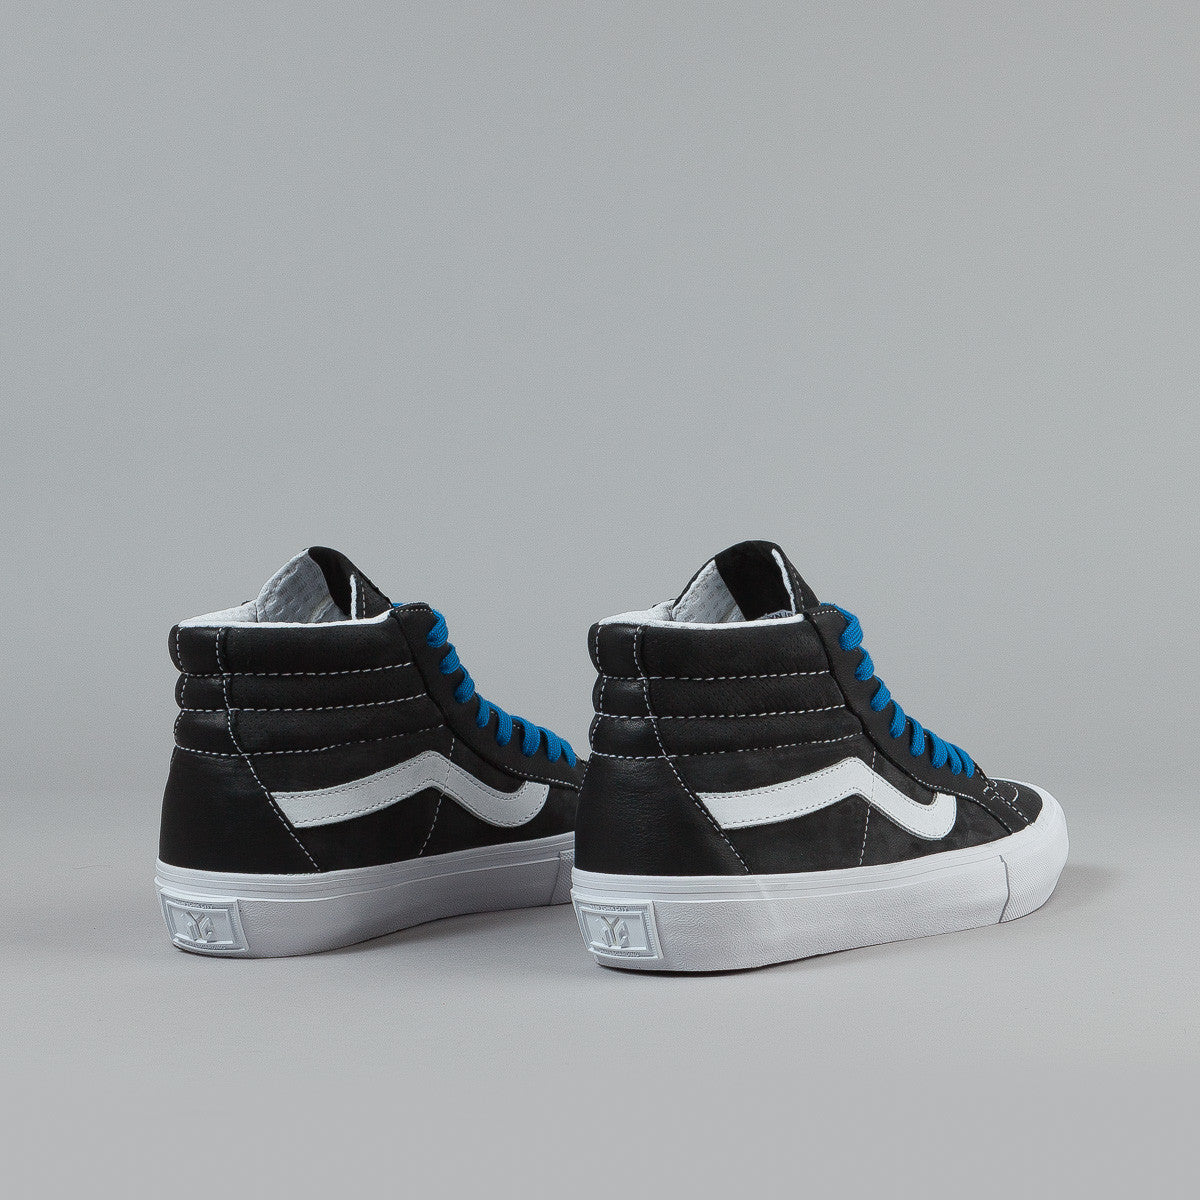 "Vans Sk8-Hi Reissue NYC ""S"" Shoes - (Andy Kessler) Black"